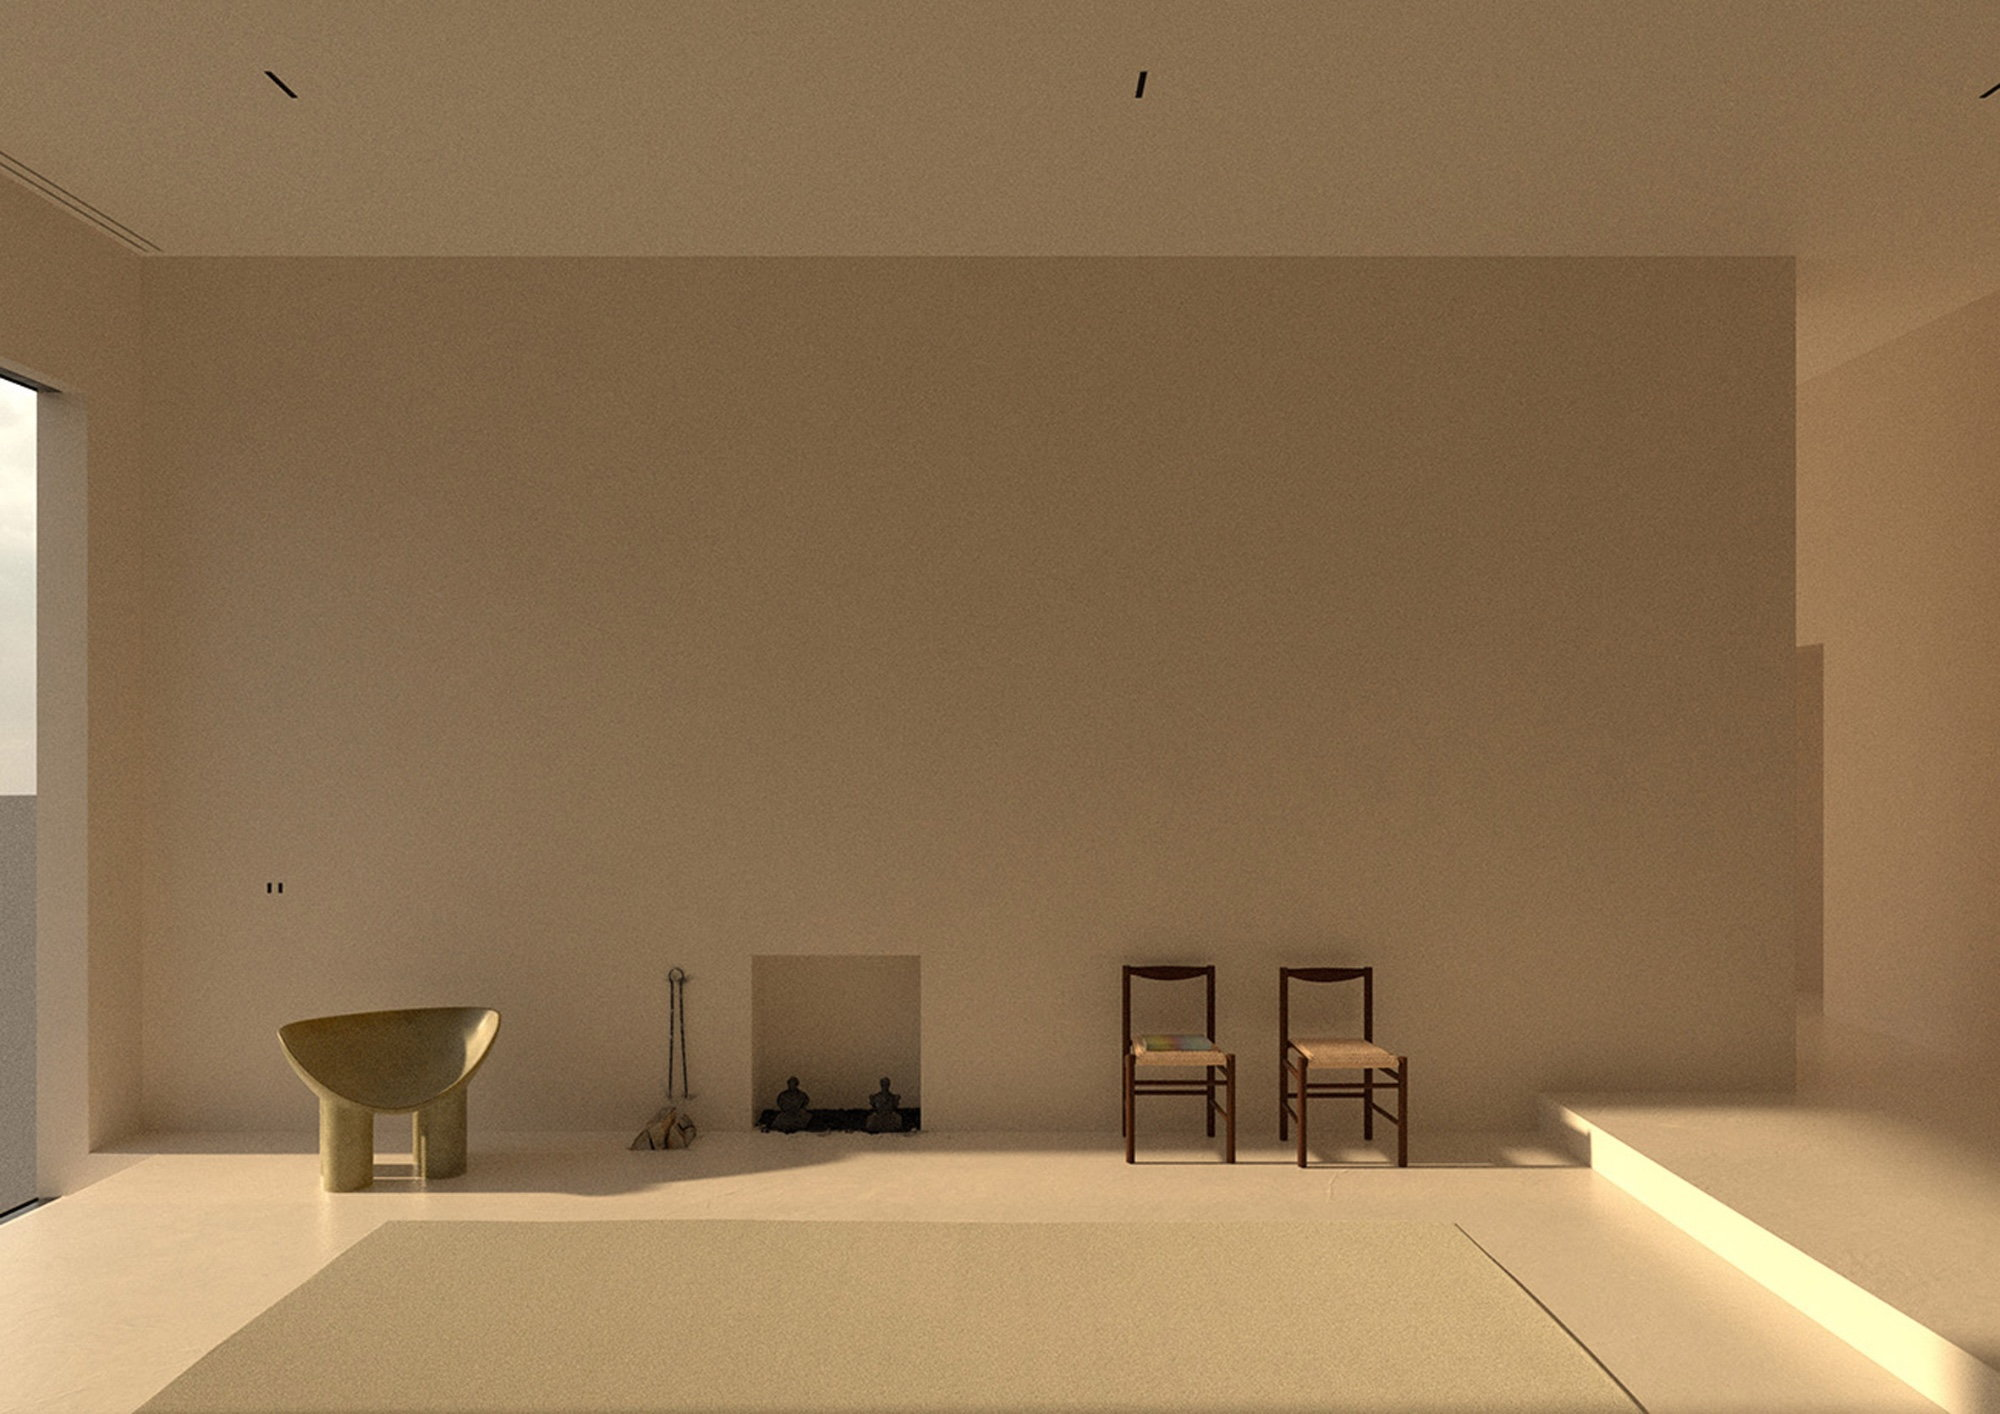 Computer-generated image of Maison's bare-bones living area.